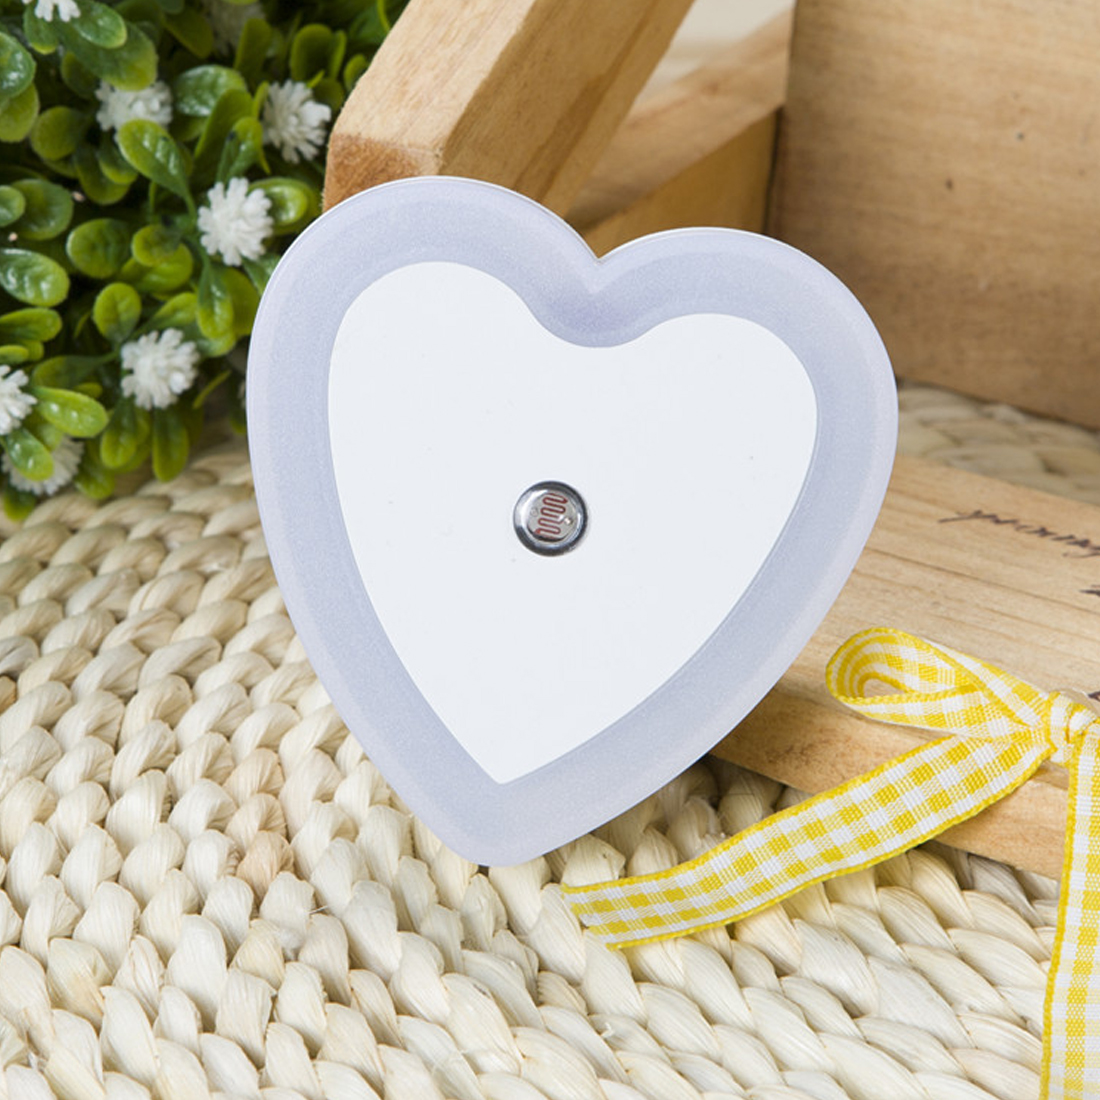 LED Night Light Sensor Control Night Light Mini EU Plug Novelty Heart Shape Bedroom Lamp For Baby Gift Romantic Colorful Lights